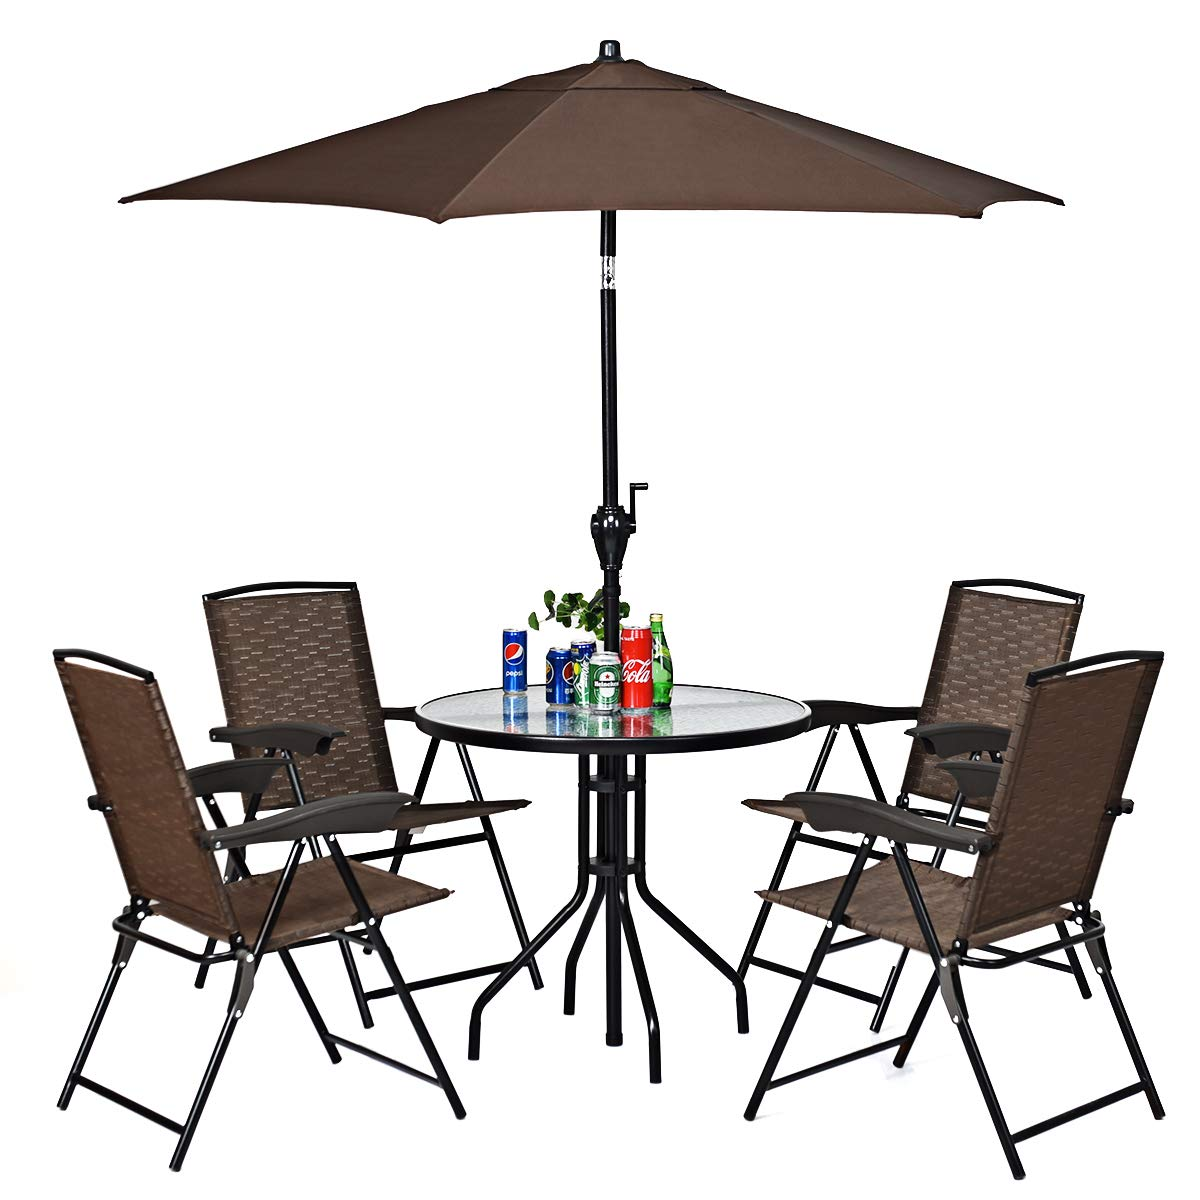 Goplus Sets of 4 Folding Sling Chairs Portable Chairs for Patio Garden Pool Outdoor & Indoor w/Armrests by Goplus (Image #4)